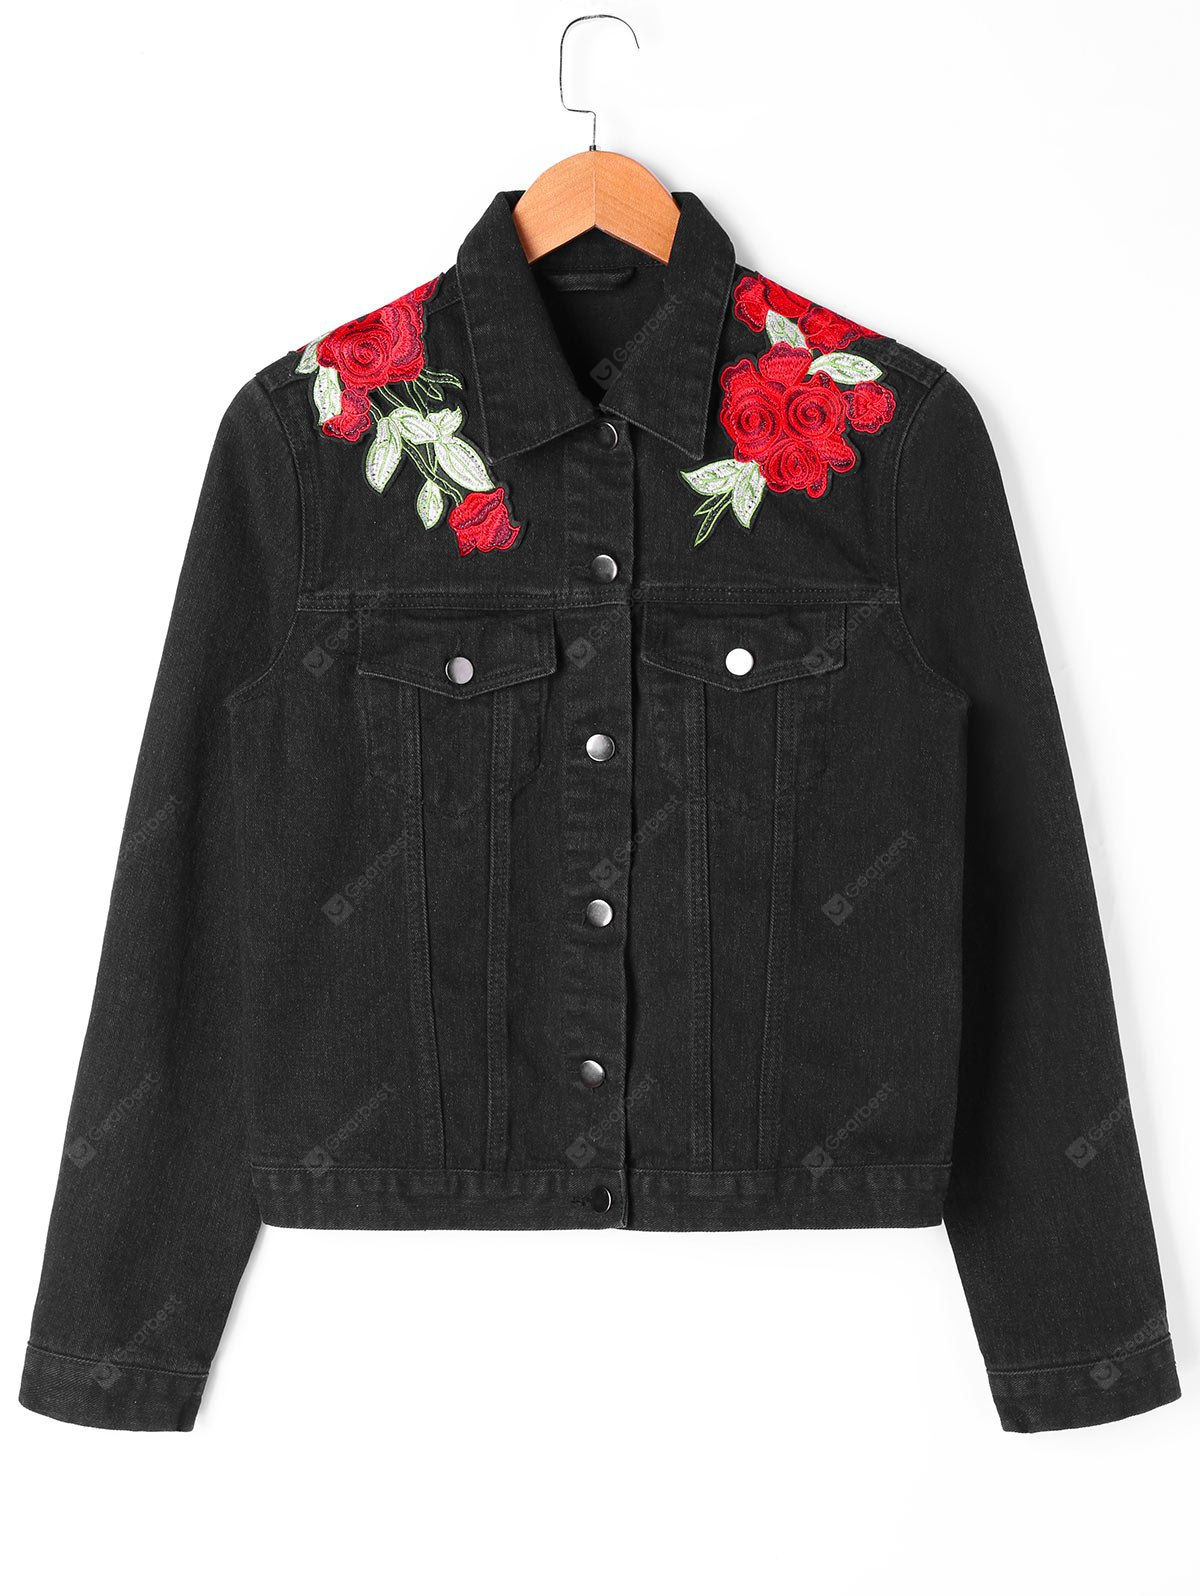 Flower Embroidered Shirt Jacket with Flap Pockets